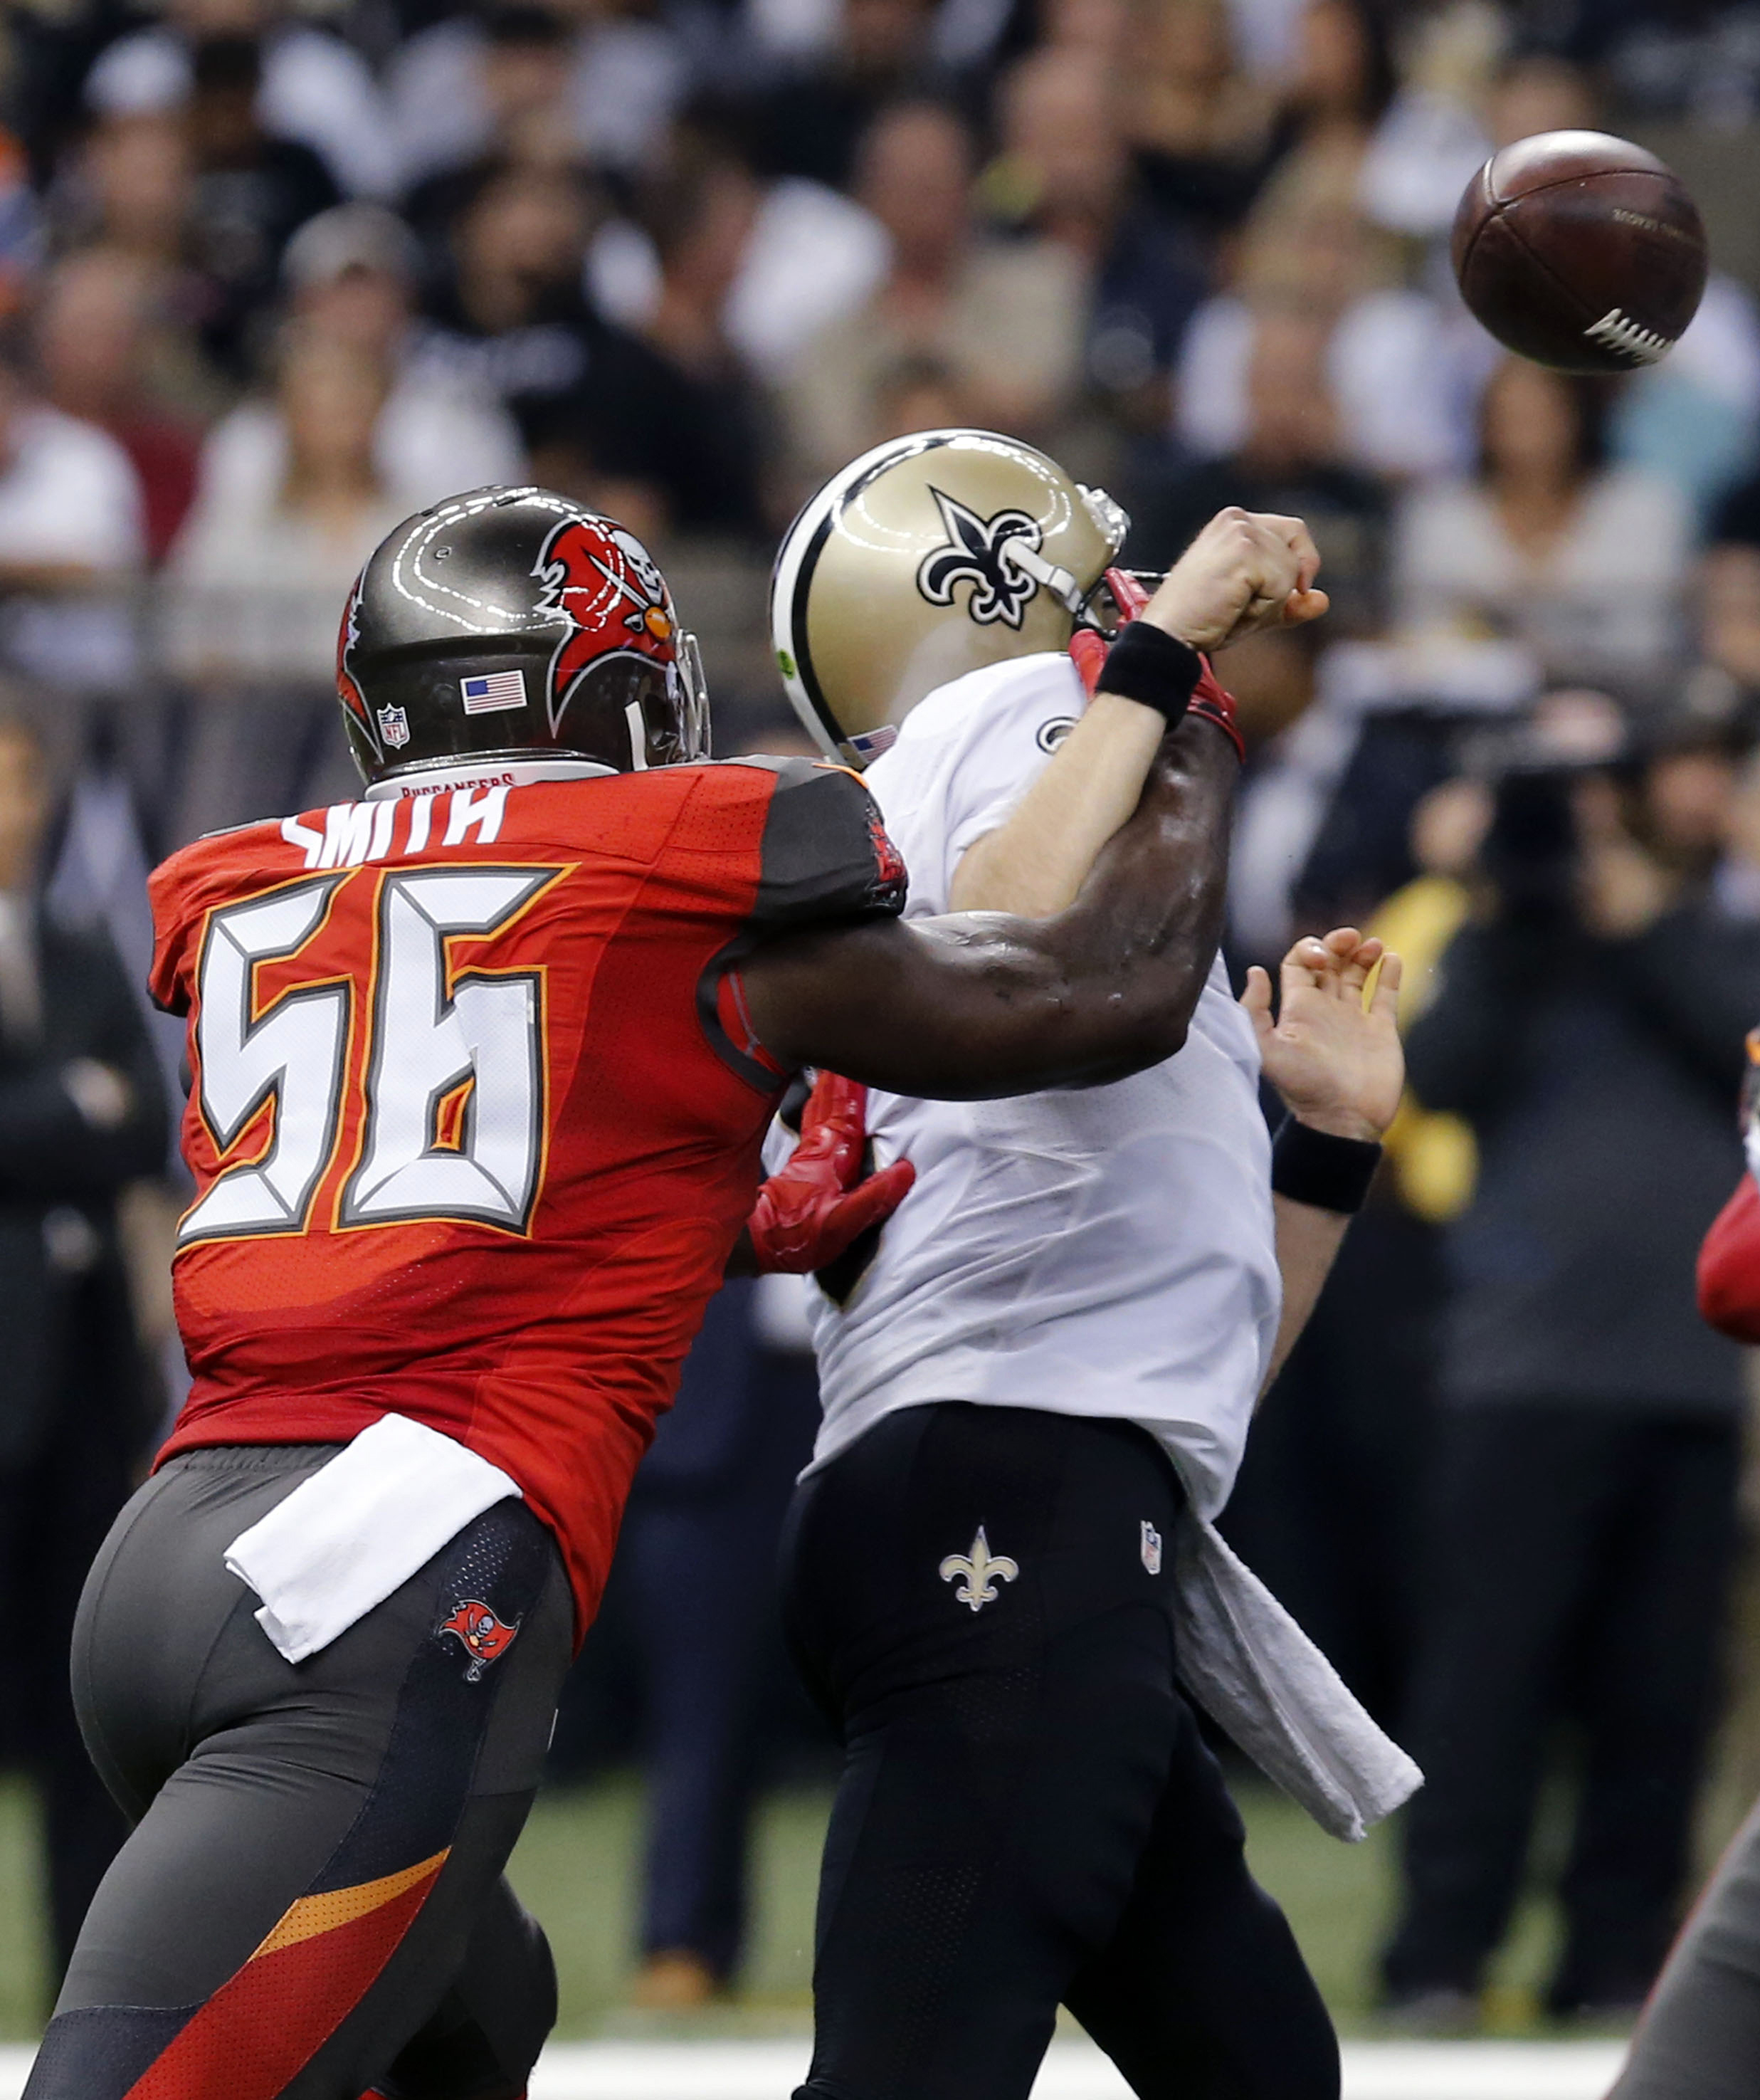 New Orleans Saints quarterback Drew Brees loses the football as he is hit by Tampa Bay Buccaneers defensive end Jacquies Smith (56) in the first half of an NFL football game in New Orleans, Sunday, Sept. 20, 2015. (AP Photo/Bill Haber)